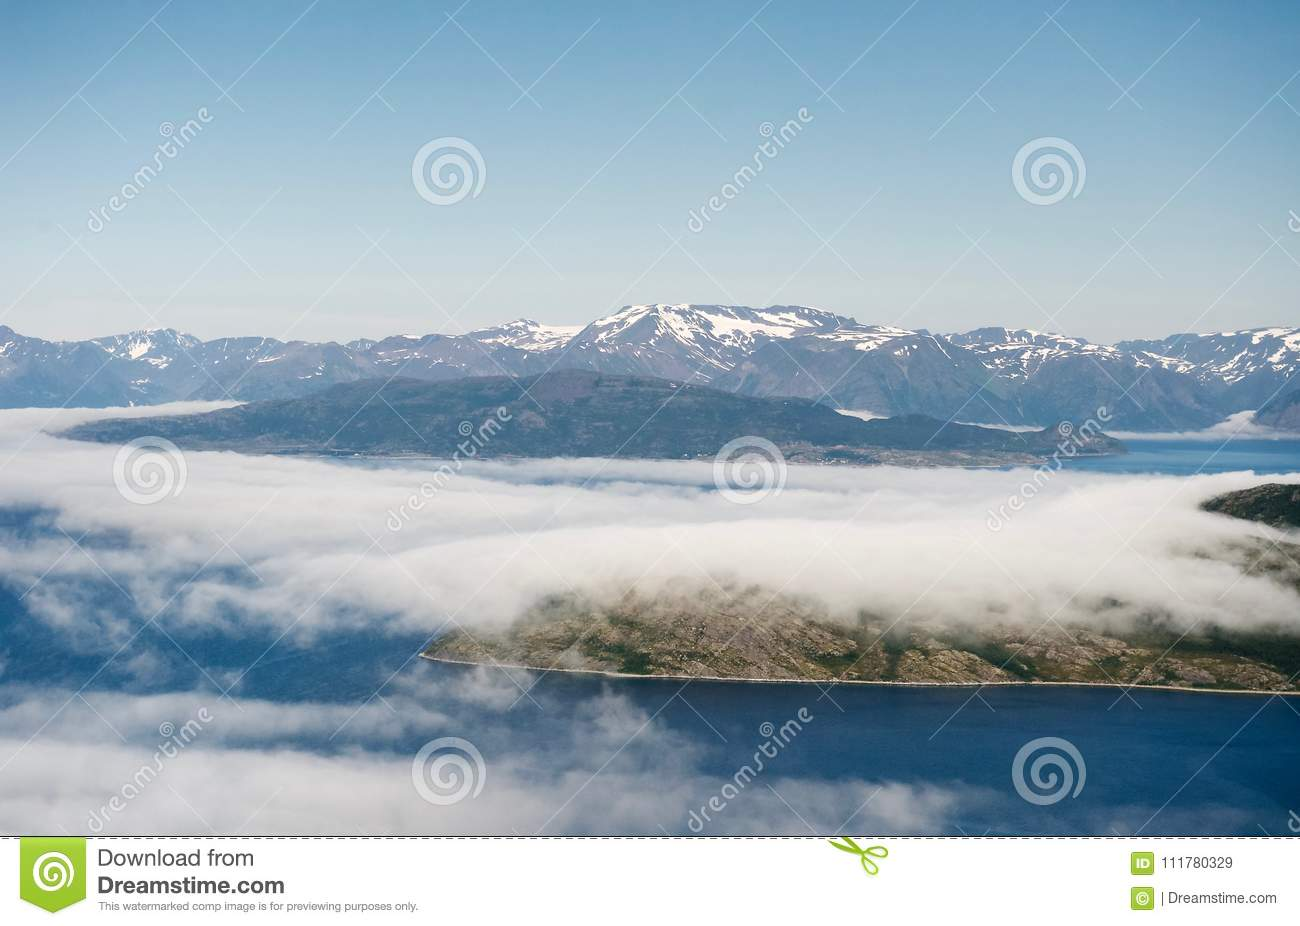 Islands covered by clouds into cold waters of norvegian fjord.